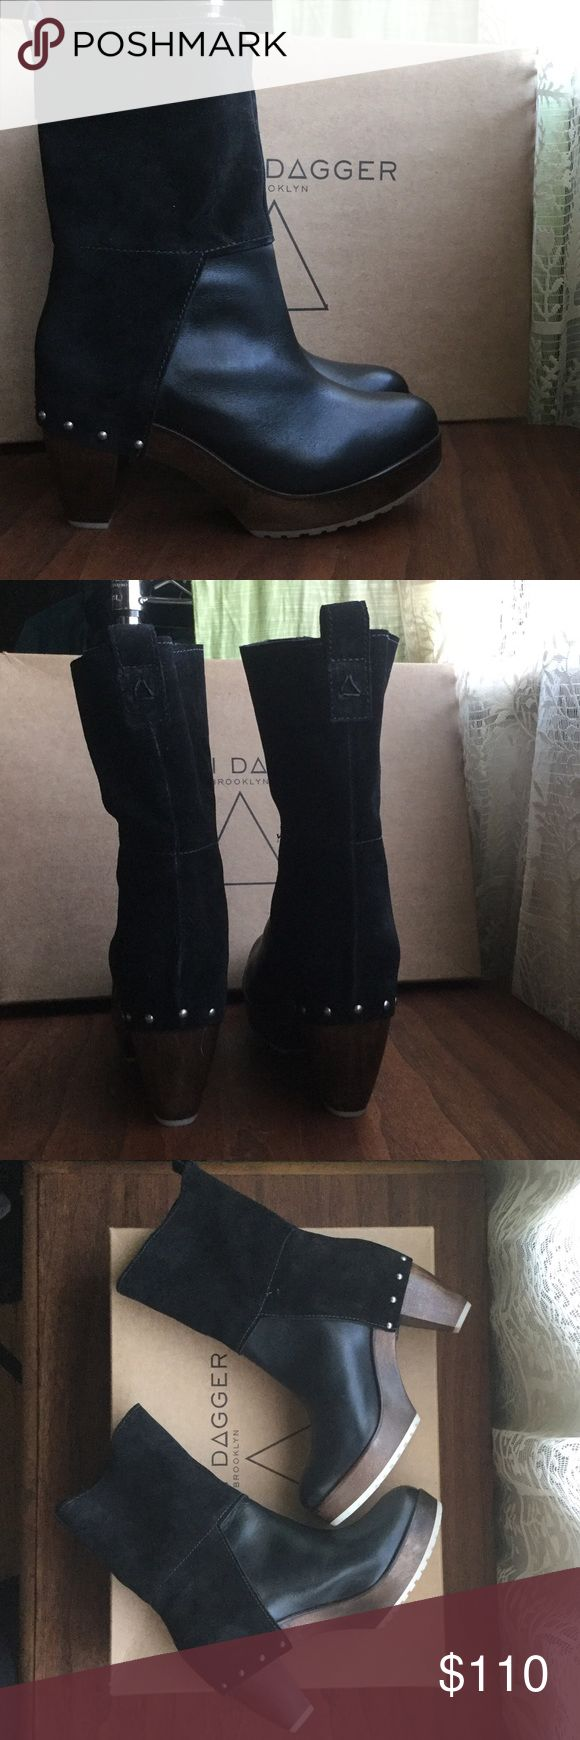 """NIB Kelsi Dagger """"Allan"""" boots in black New in box, never worn. Black, size 7.5. Wooden heel with rubber grippy sole - great for slippery winter streets! Also sold at Anthroplogie. Kelsi Dagger Shoes Heeled Boots"""